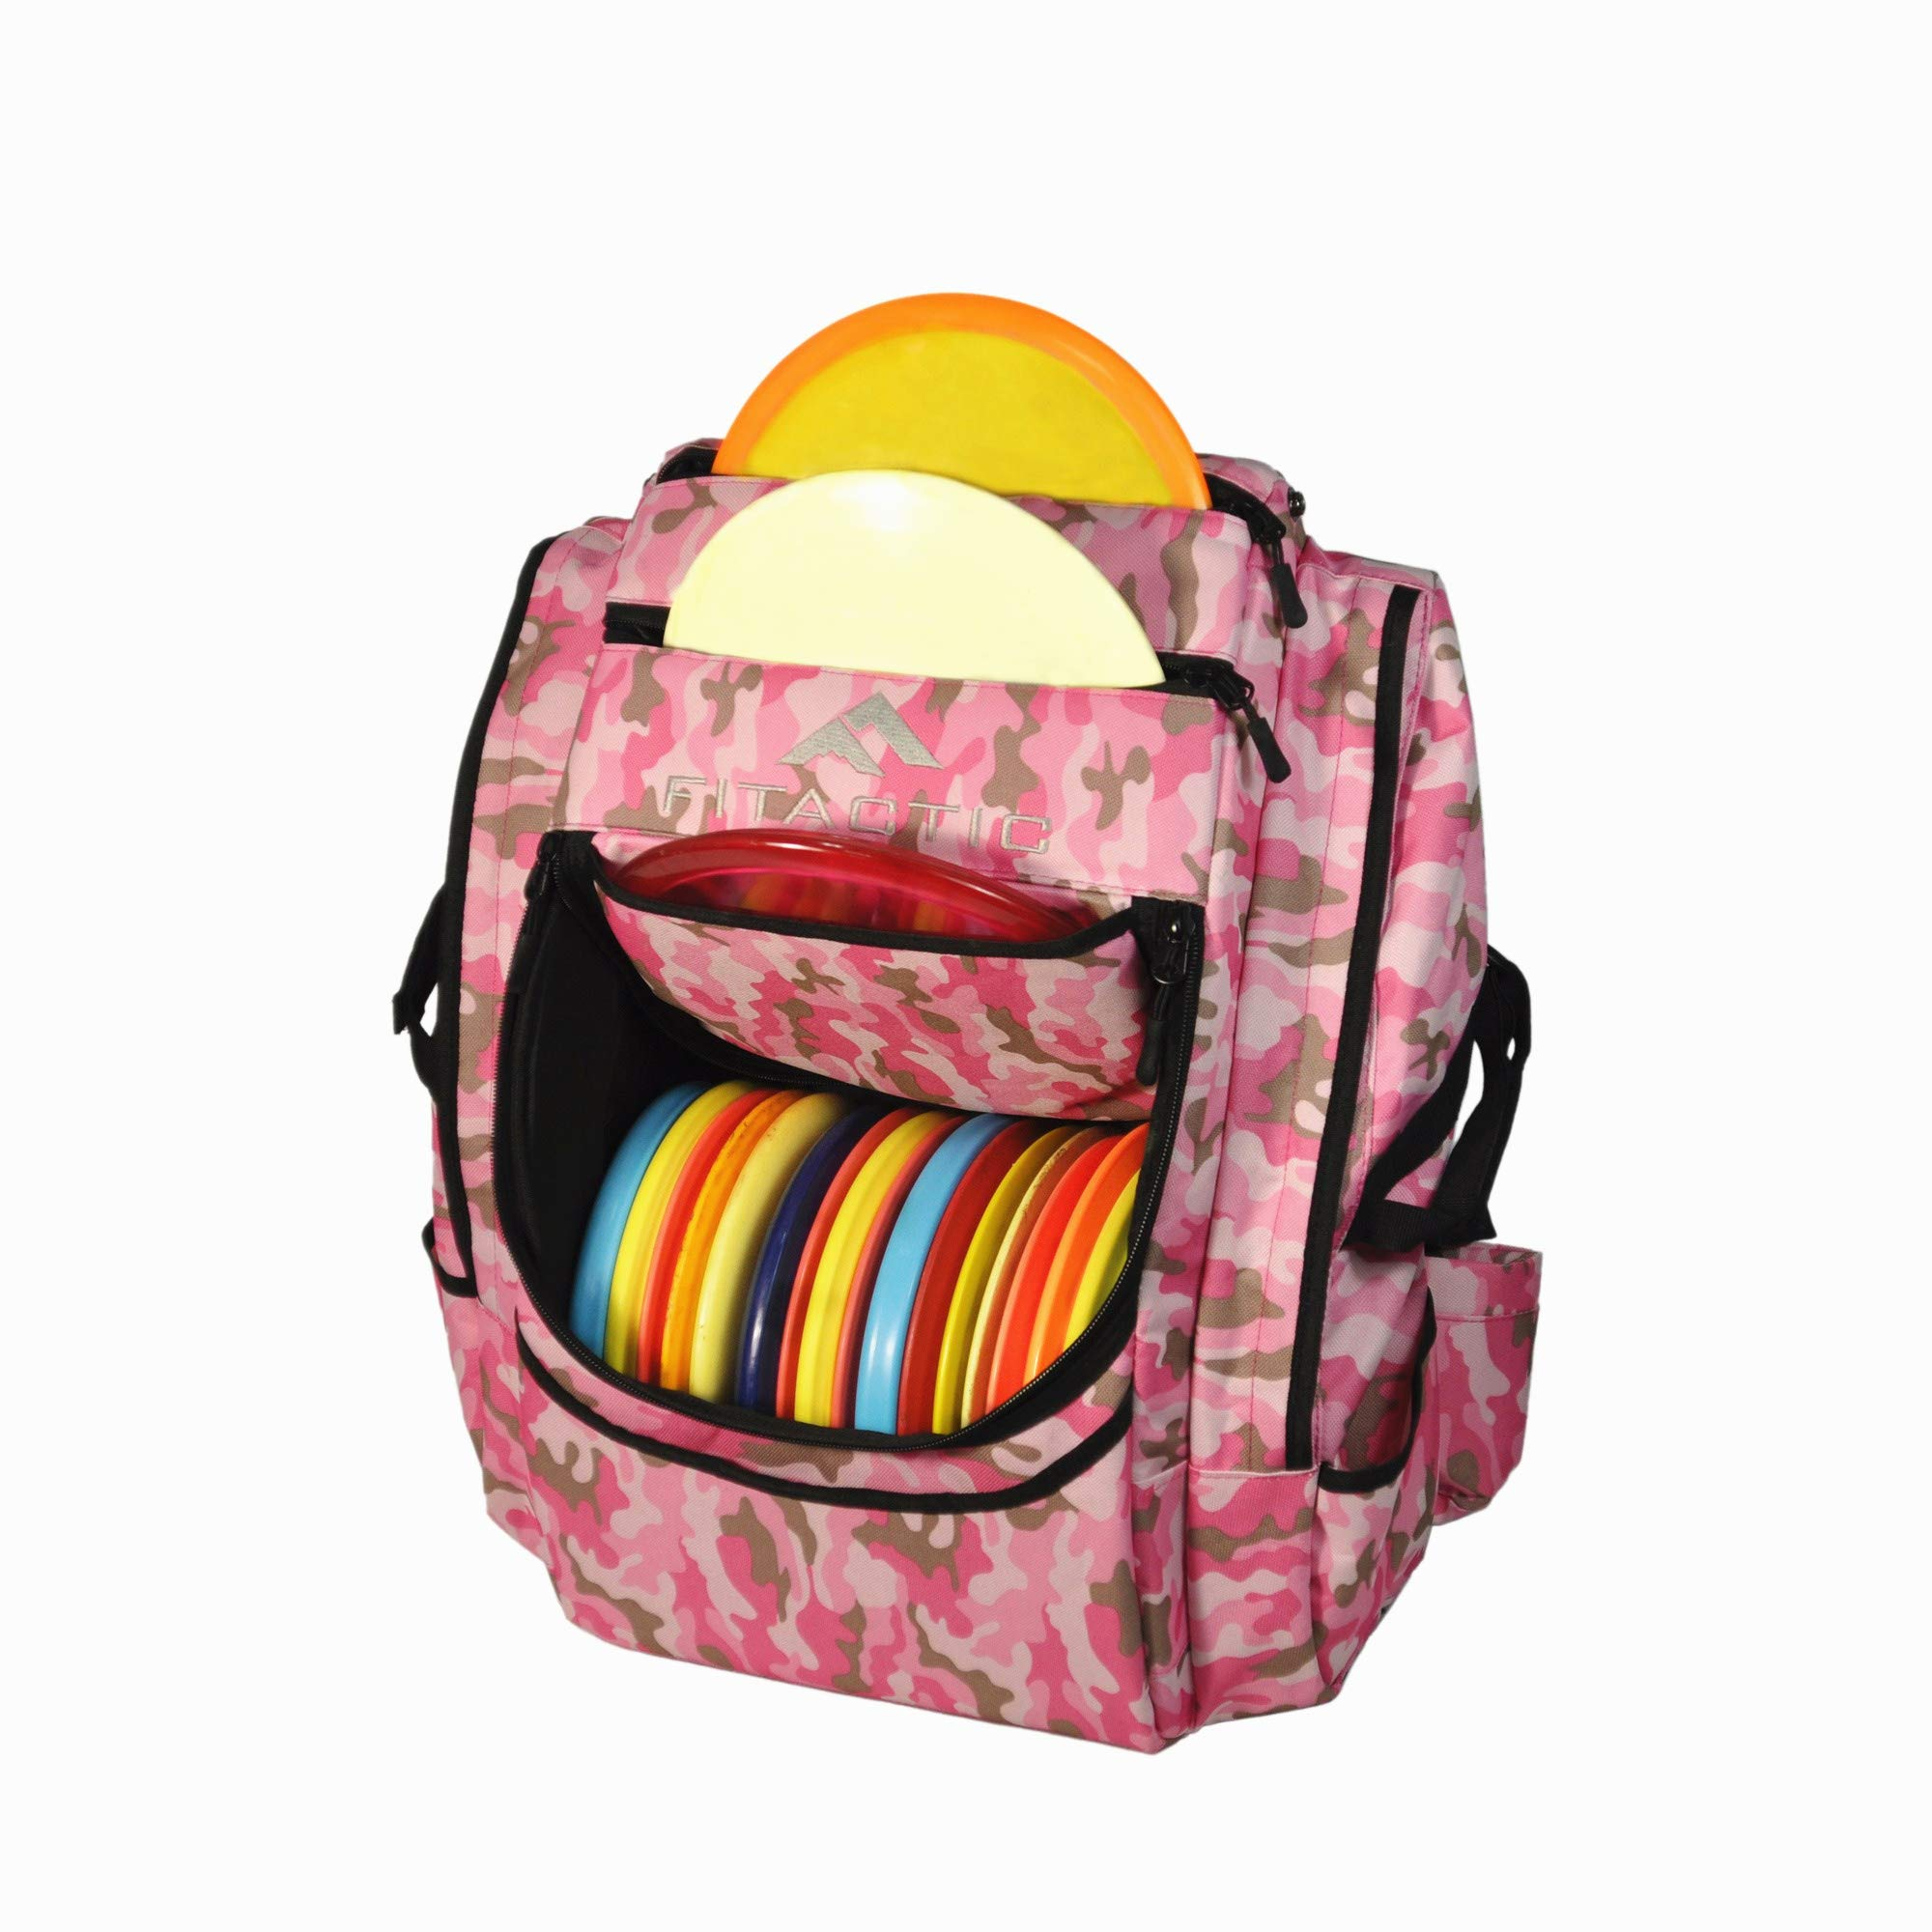 FITactic Luxury Frisbee Disc Golf Bag Backpack (Capacity: 25-30 Discs, Pink Woodland Camouflage) by FITactic